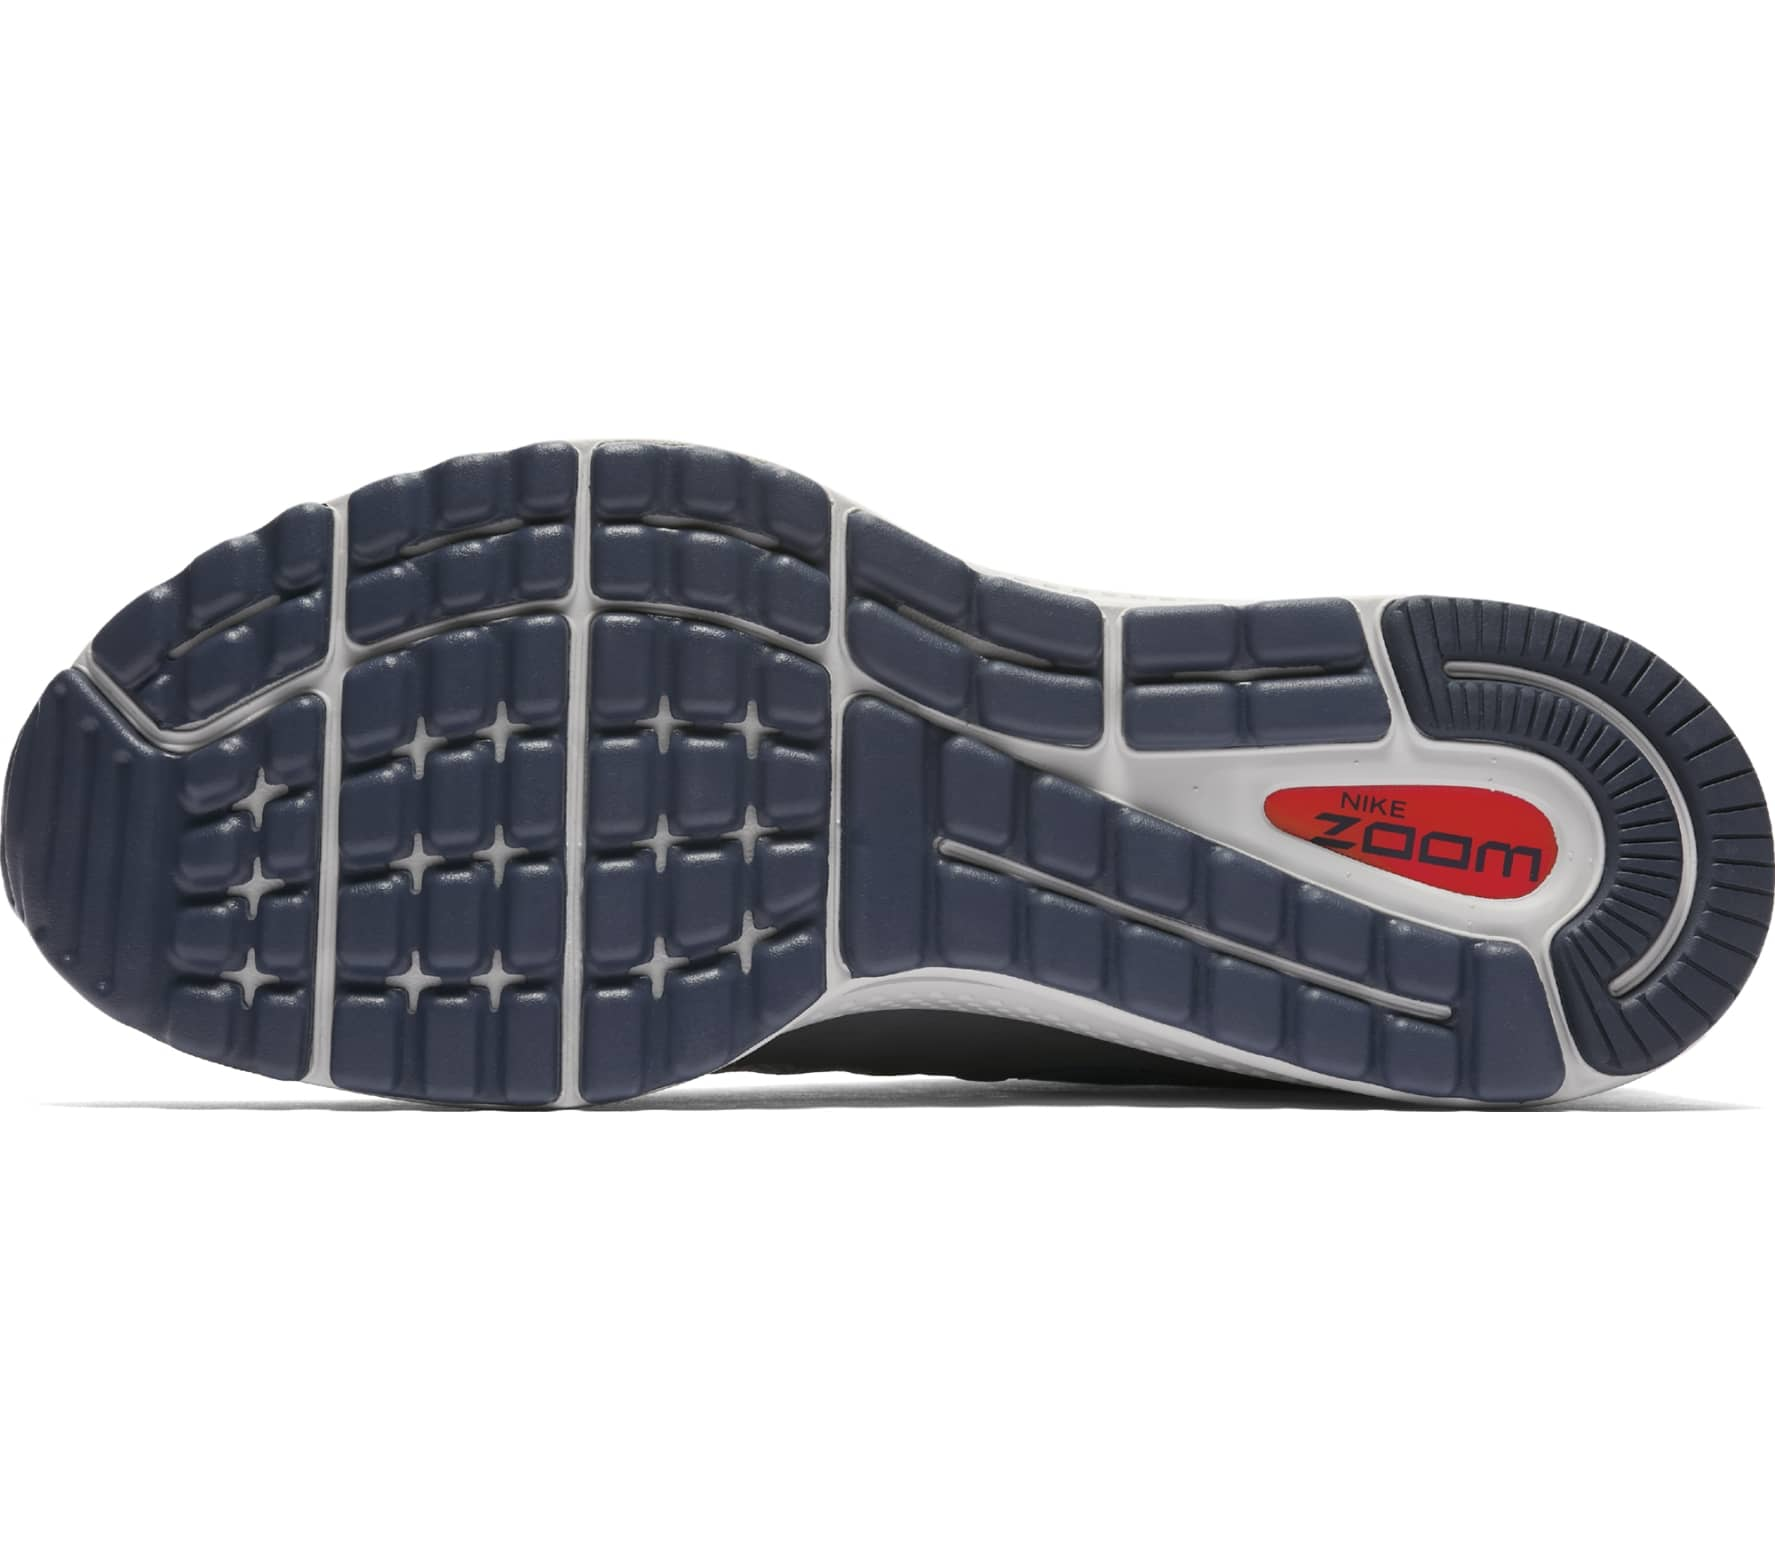 a04757606487c7 ... reduced nike air zoom vomero 13 mens running shoes grey blue b596e  4d885 promo code for ...